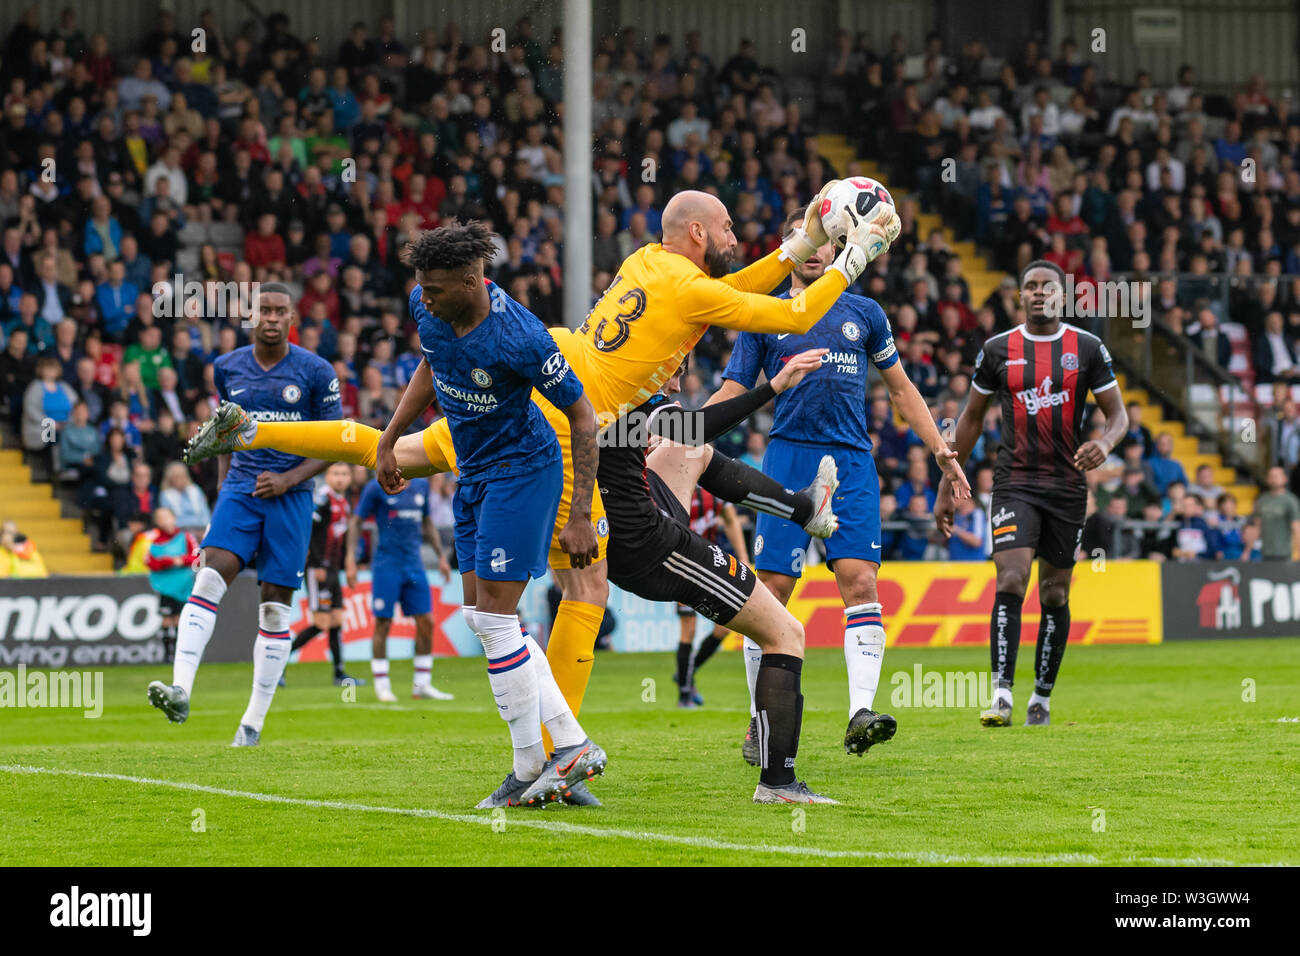 Chelsea Goalkeeper Willy Caballero in action during Chelsea's pre season friendly match against Bohemian FC in Dublin. Final Score 1-1. - Stock Image